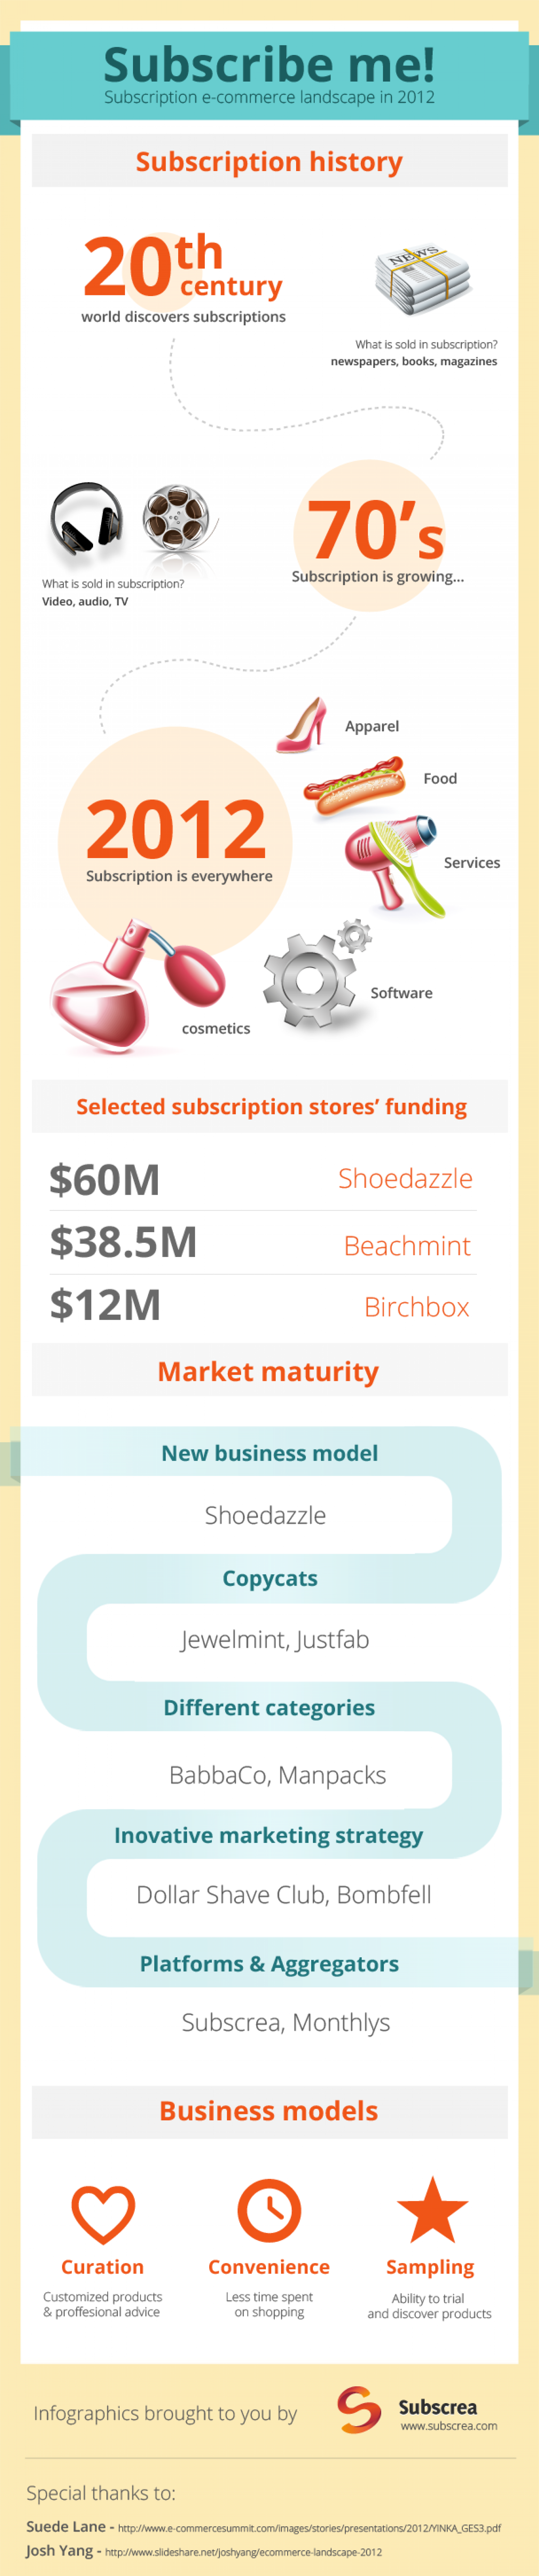 Subscription economy landscape 2012 Infographic